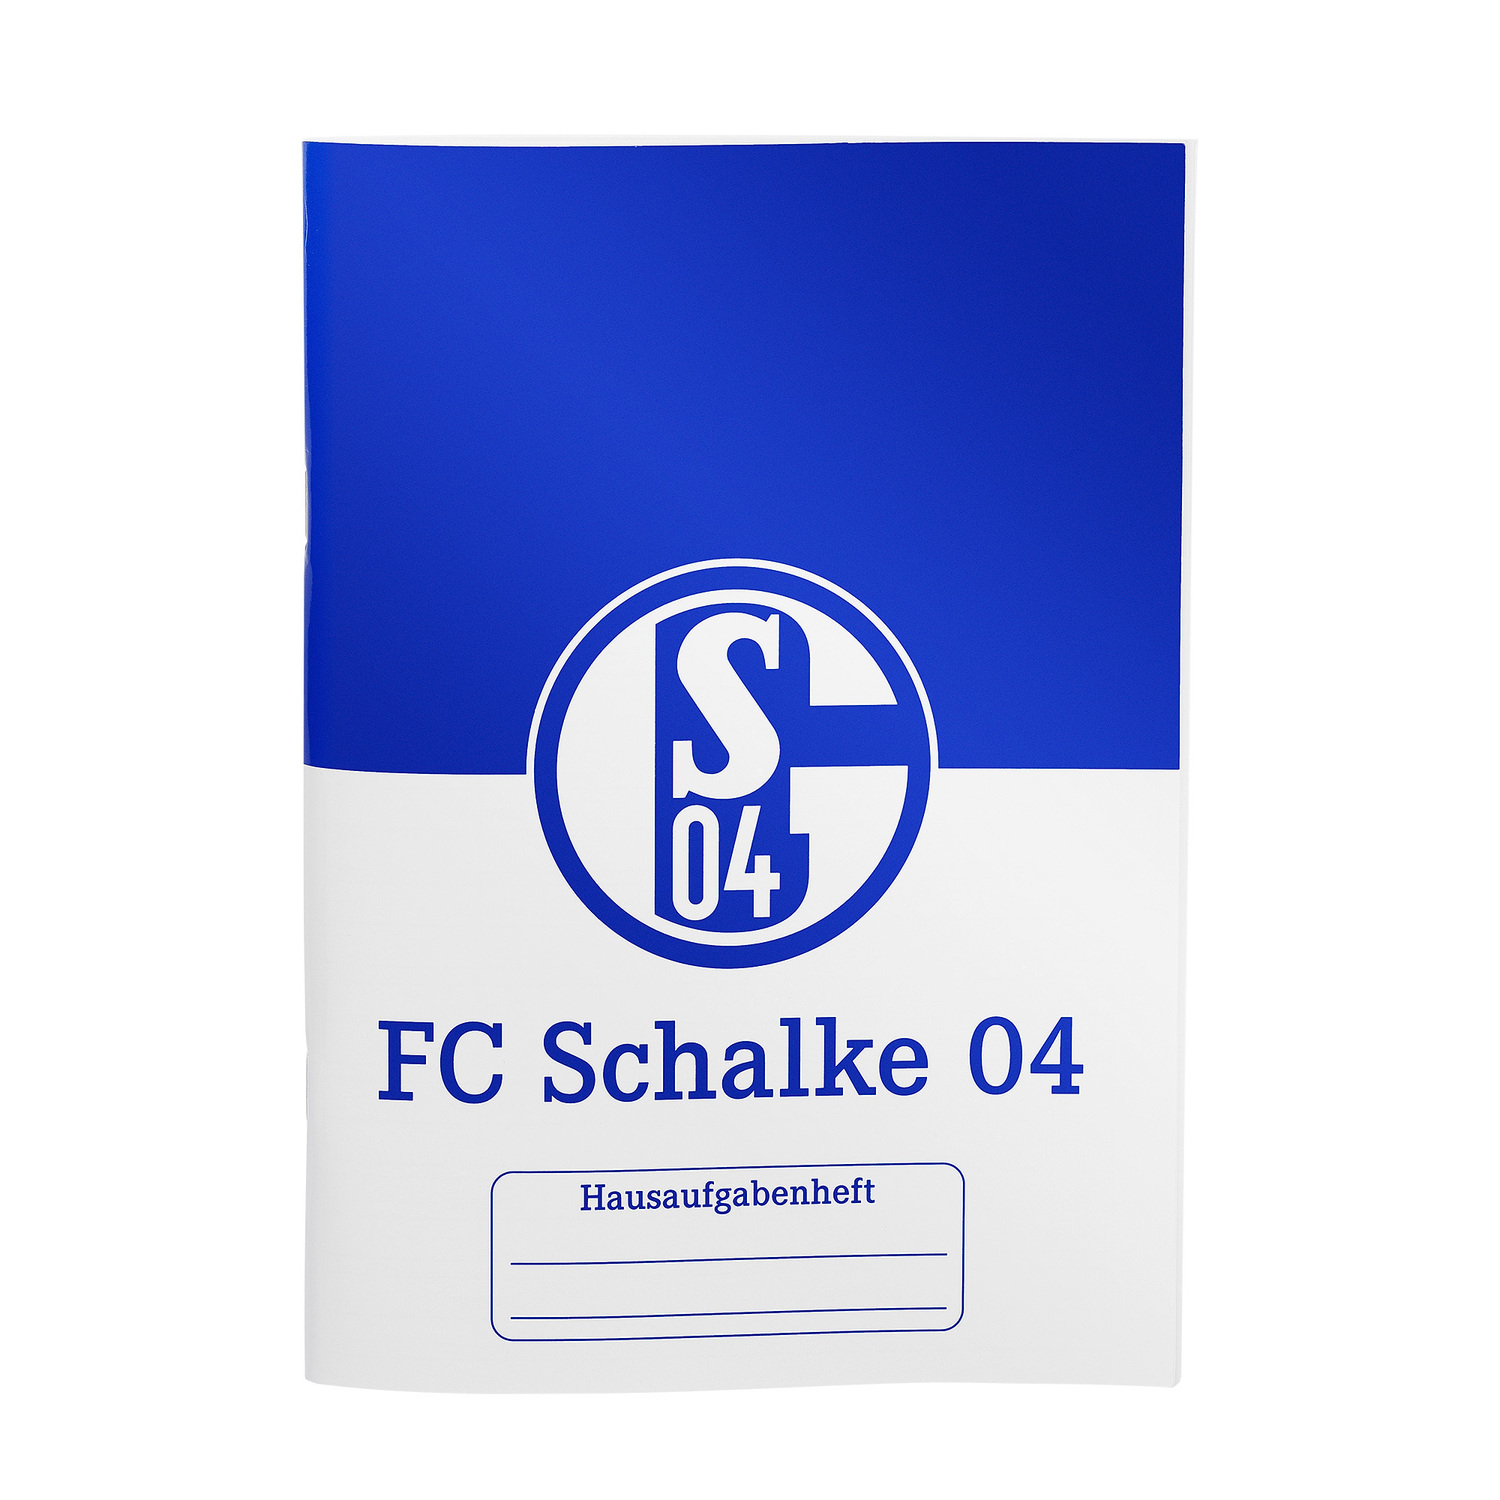 fc schalke 04 hausaufgabenheft din a5. Black Bedroom Furniture Sets. Home Design Ideas